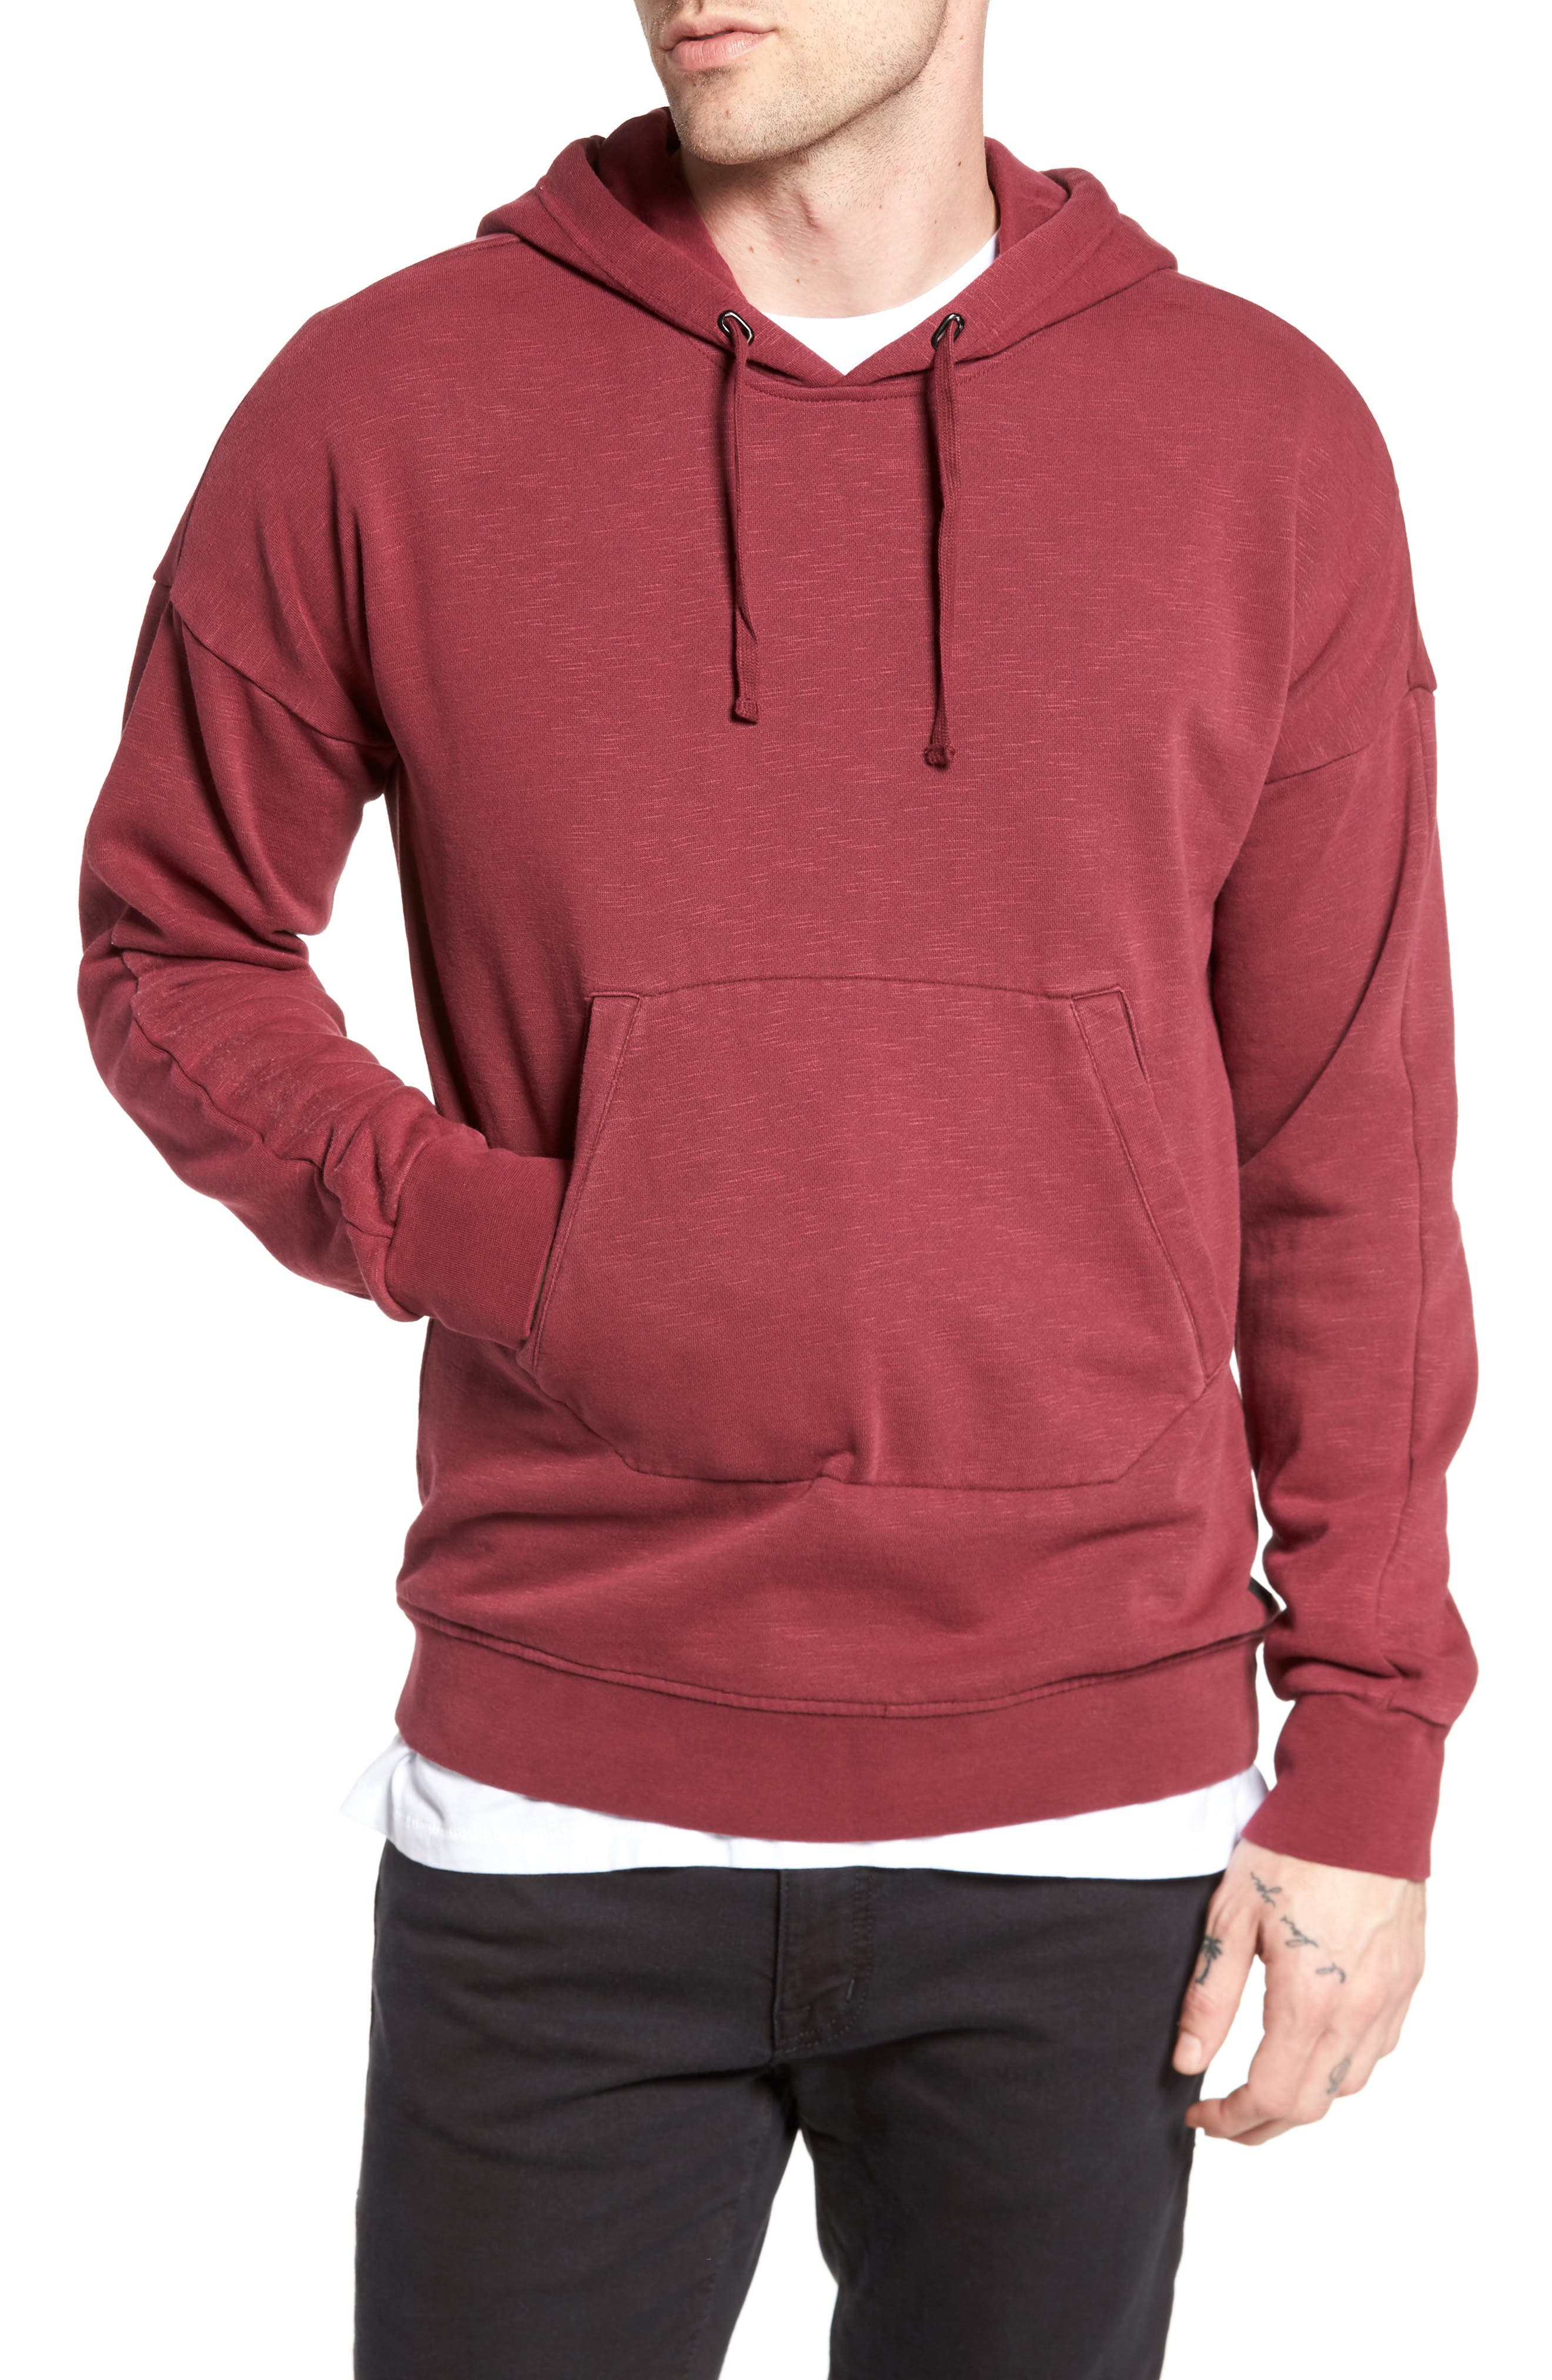 Turf Hooded Sweatshirt,                             Main thumbnail 1, color,                             Rosewood